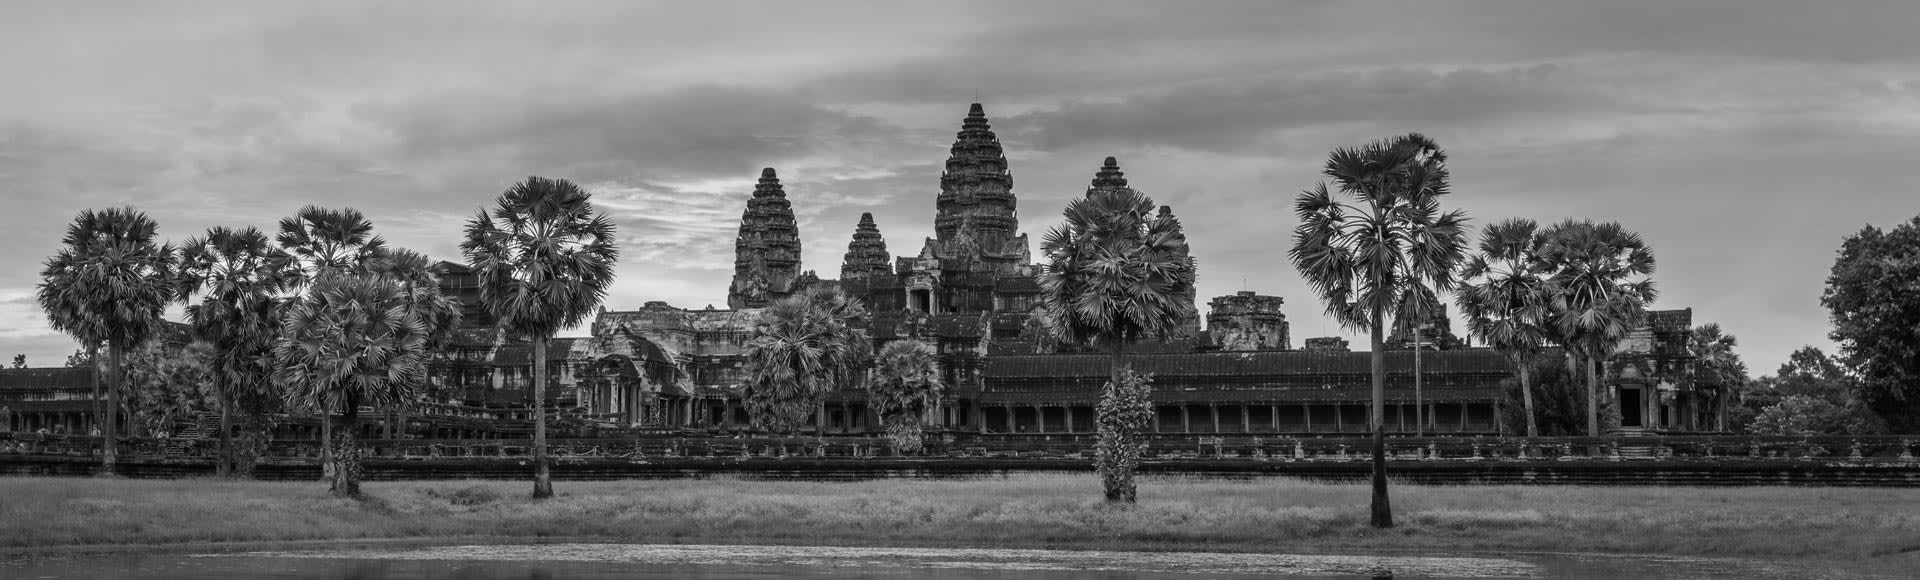 Angkor Wat Sieam Reap